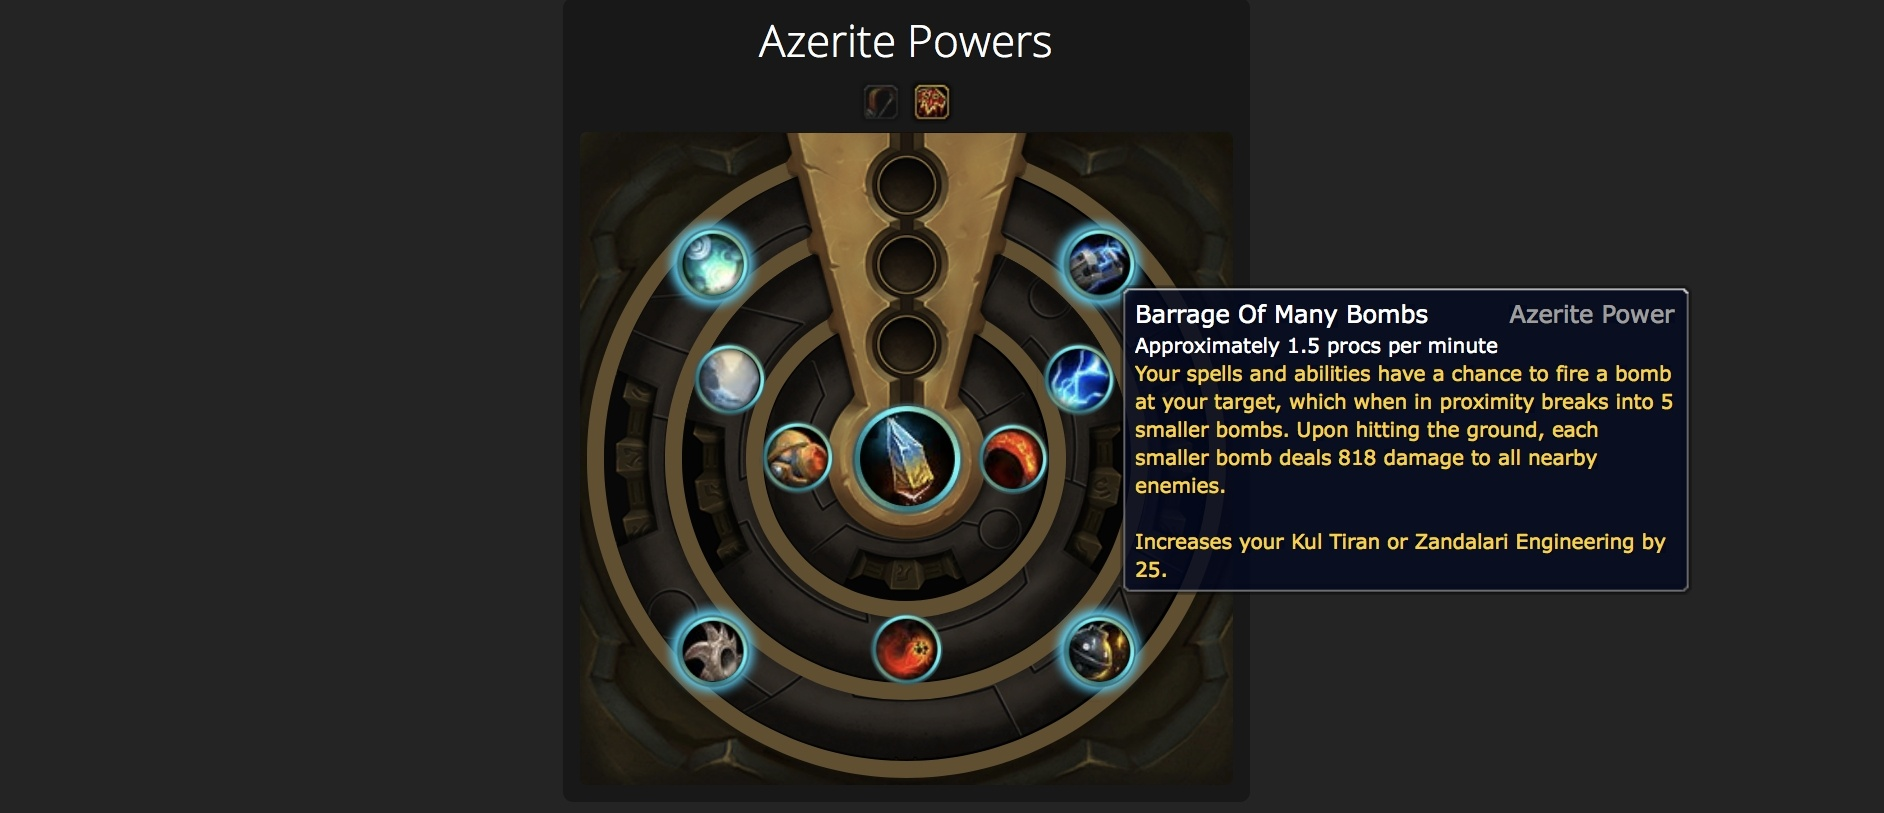 Azerite Power Finder Tool - Look Up Armor with Specific